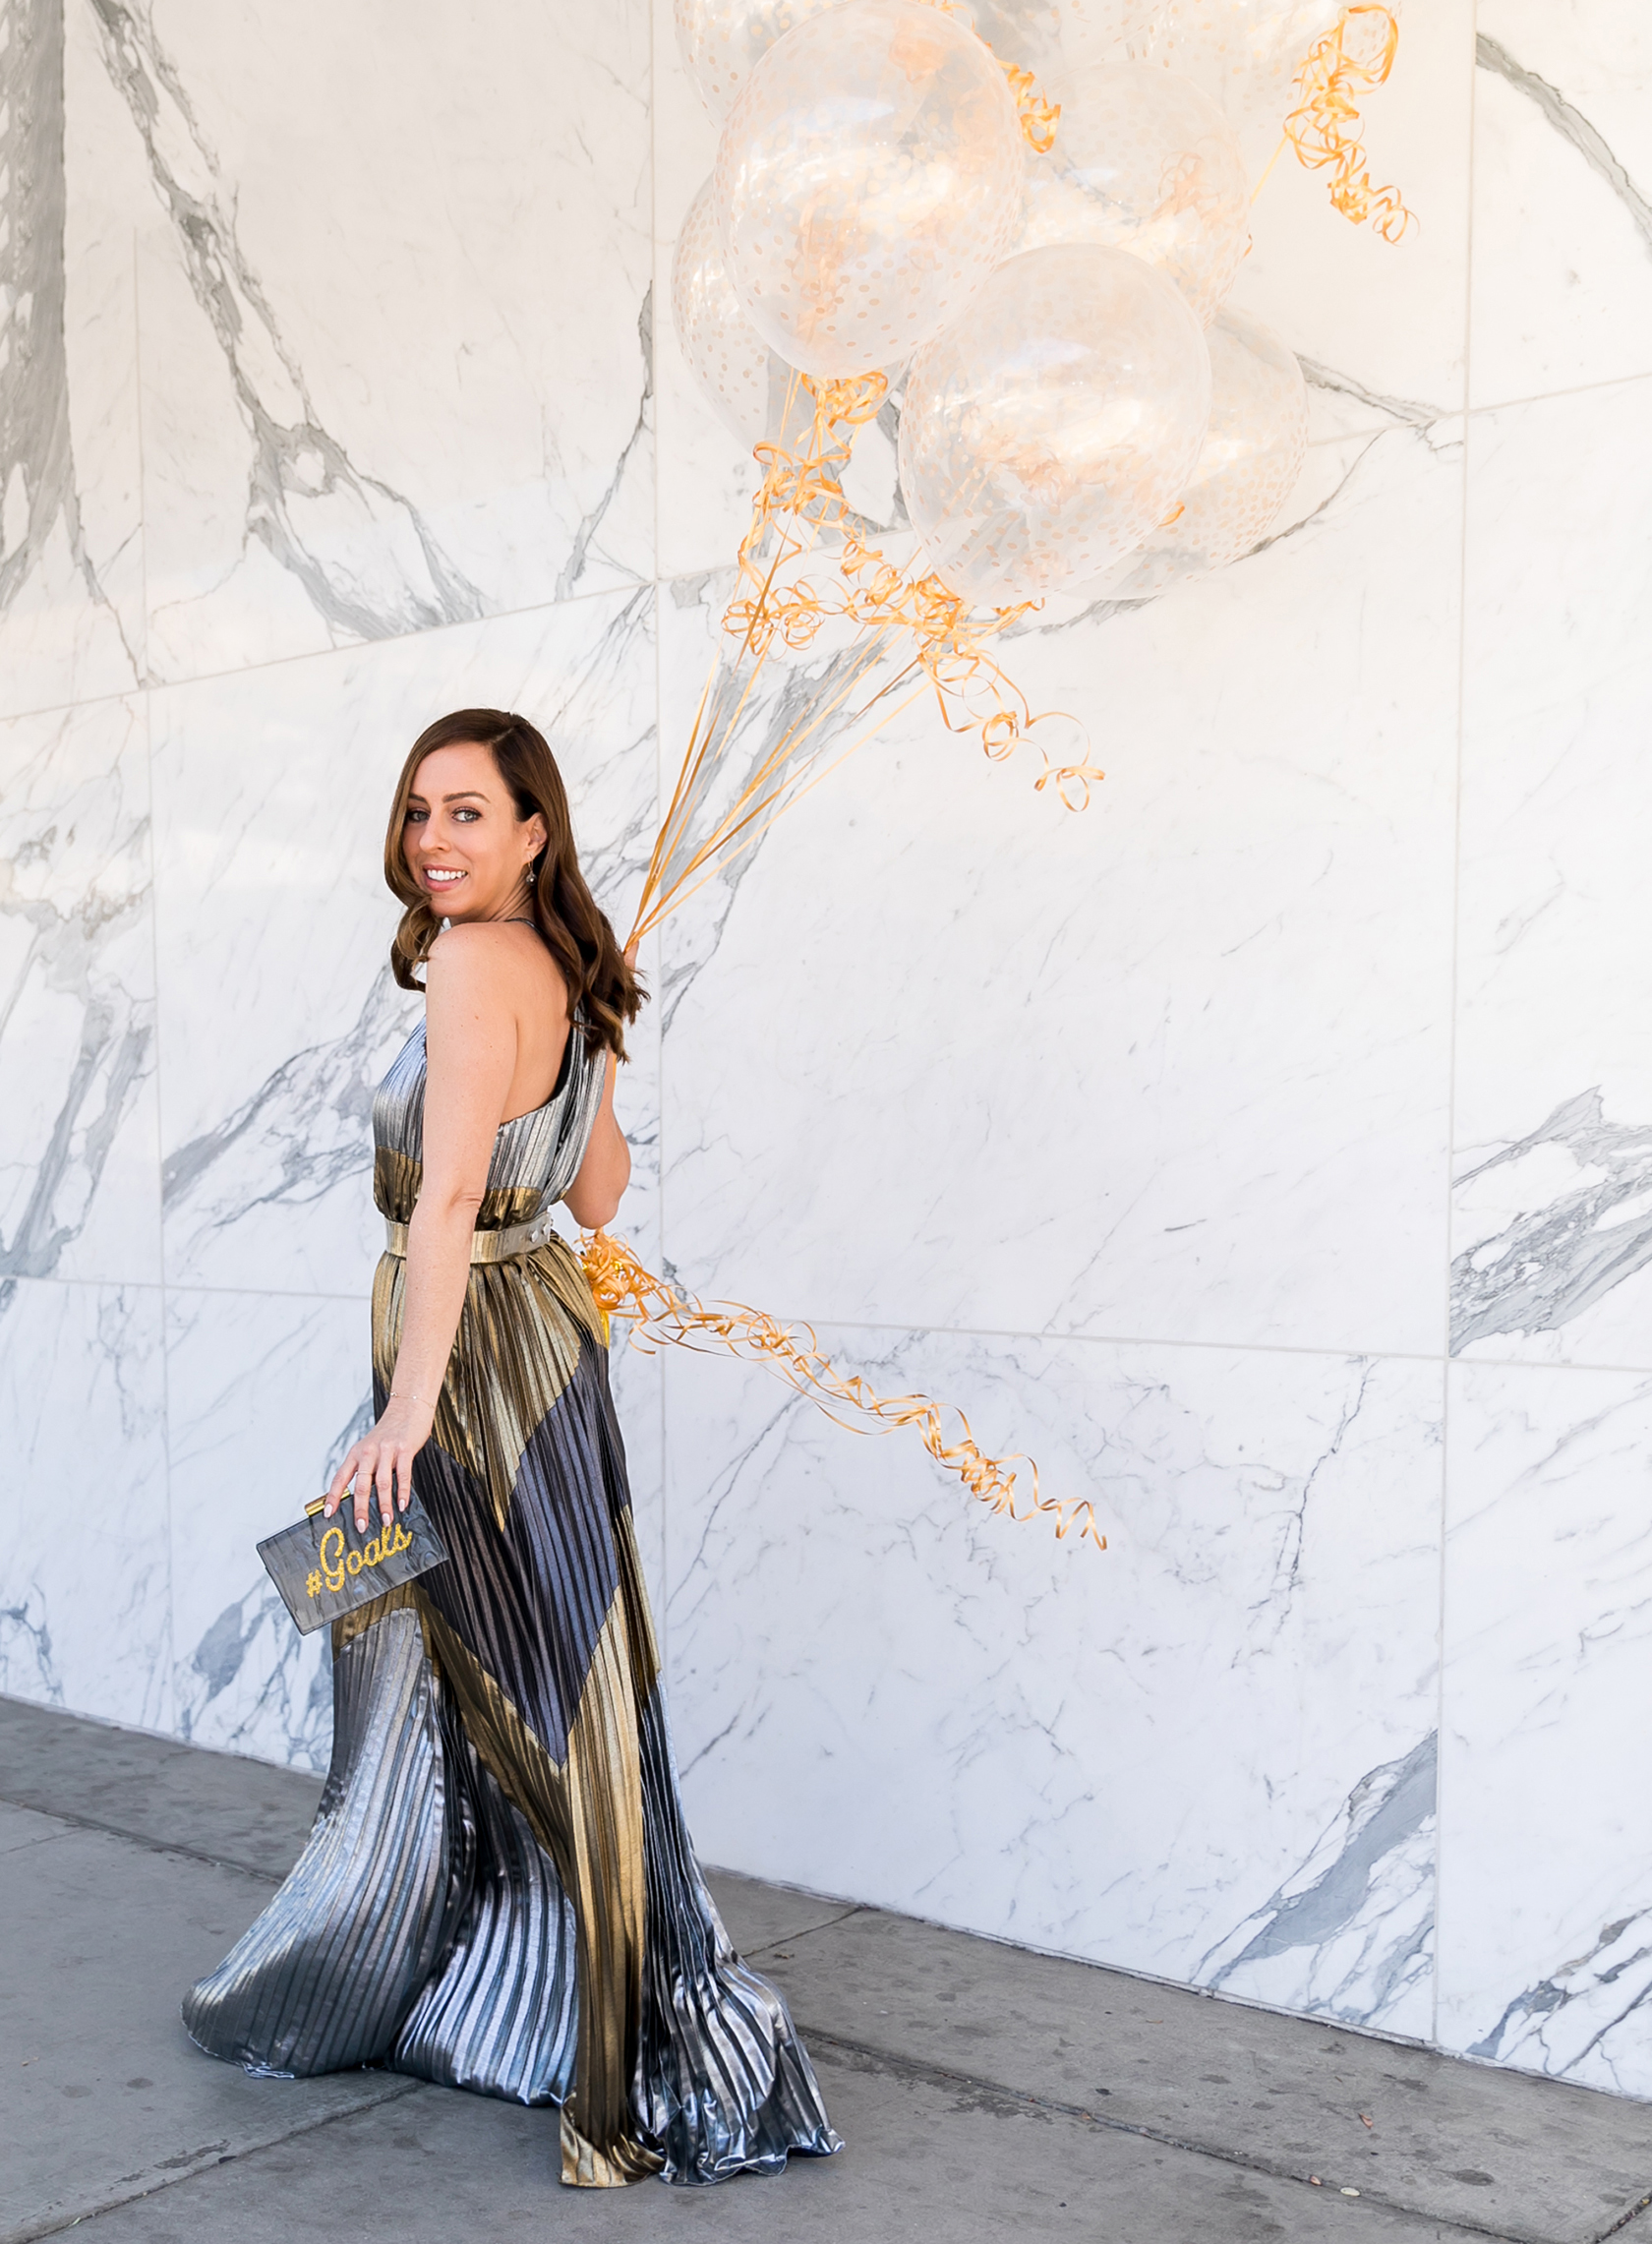 Sydne Style wears metallic pleated maxi dress for new years eve outfit ideas